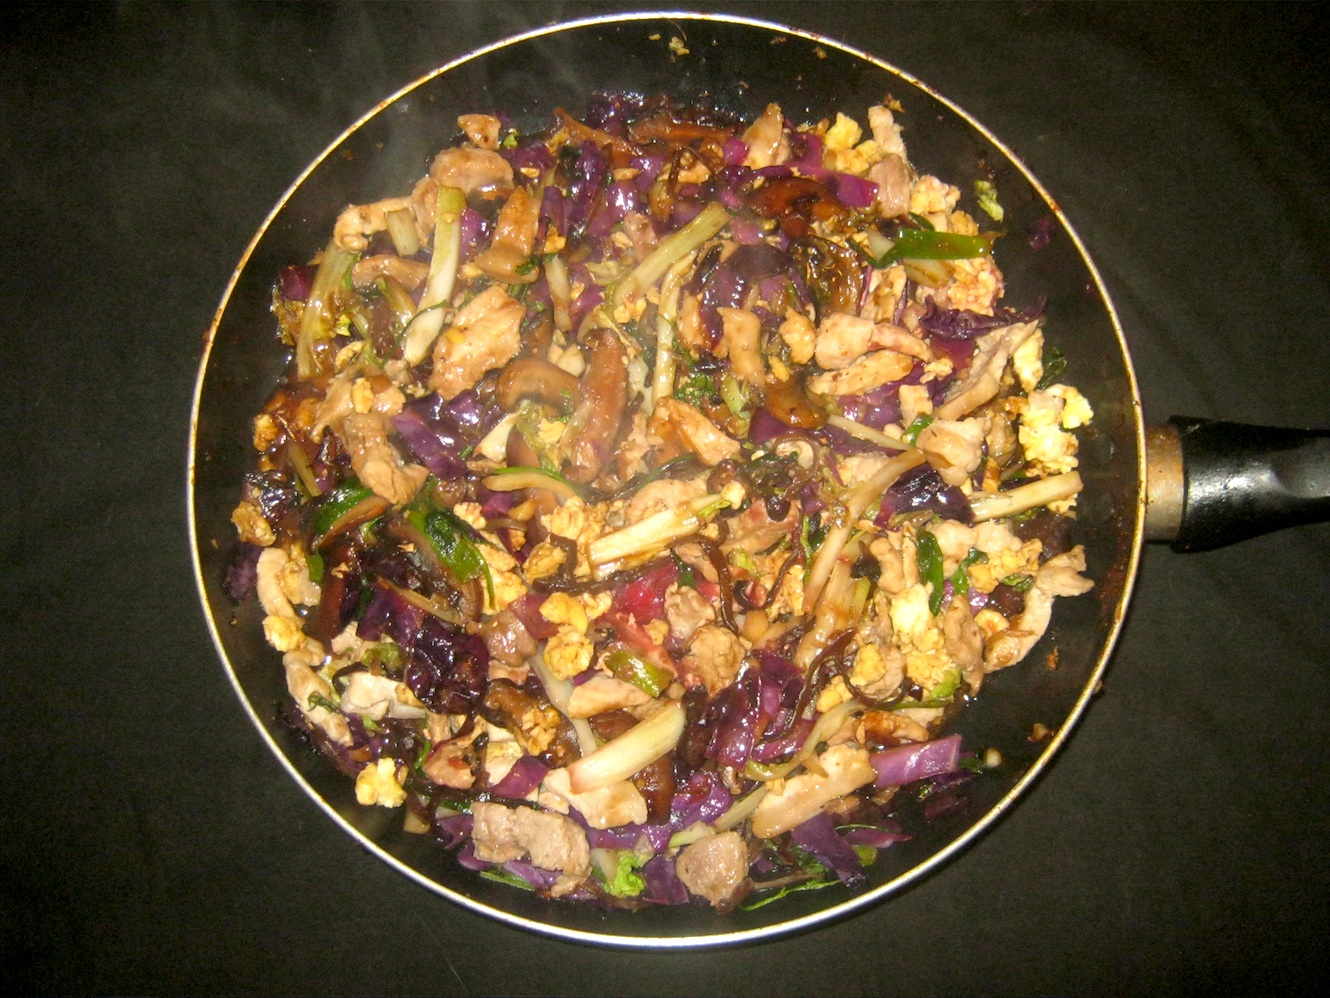 Colorful Mu Shu / Moo Shu Pork in a pan